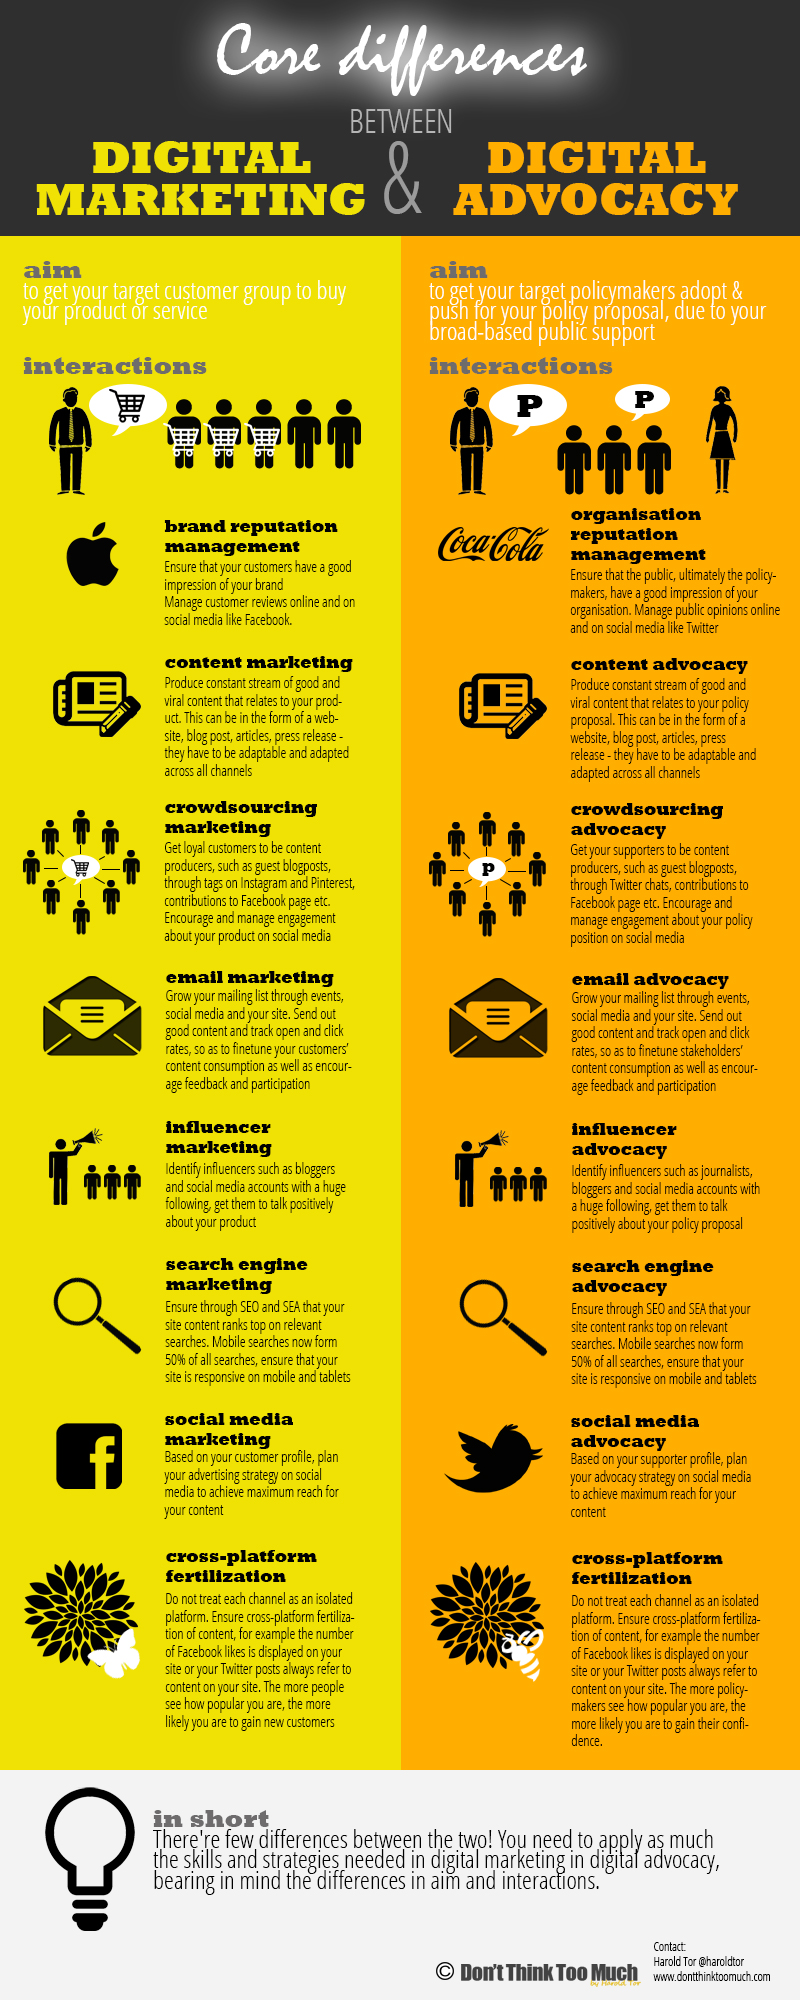 [infographic] Core Differences between Digital Marketing and Digital Advocacy